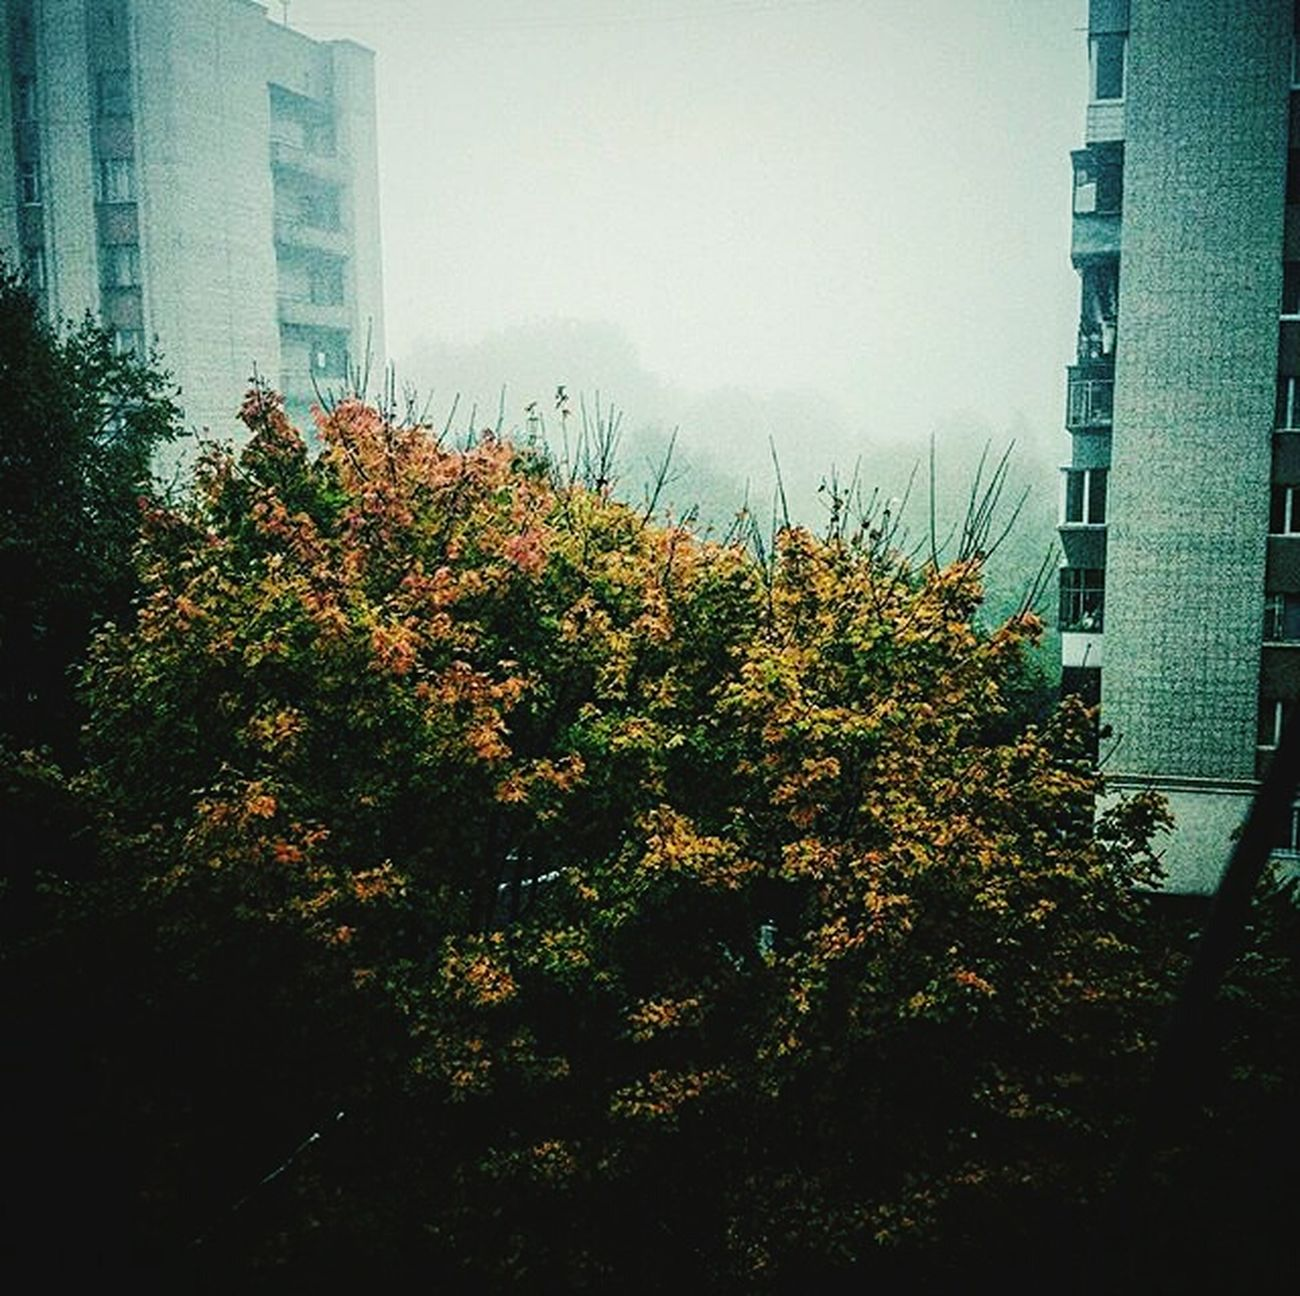 City Beauty In Nature Nature Outdoors Sky Day Autumn Colors Autumn🍁🍁🍁 Landscape VSCO Vscogram Vscogood Vscocam Lviv, Ukraine Lvivua Lvivit Lviv1256 Lvivgram Lvivforyou No People Tree Area Nature